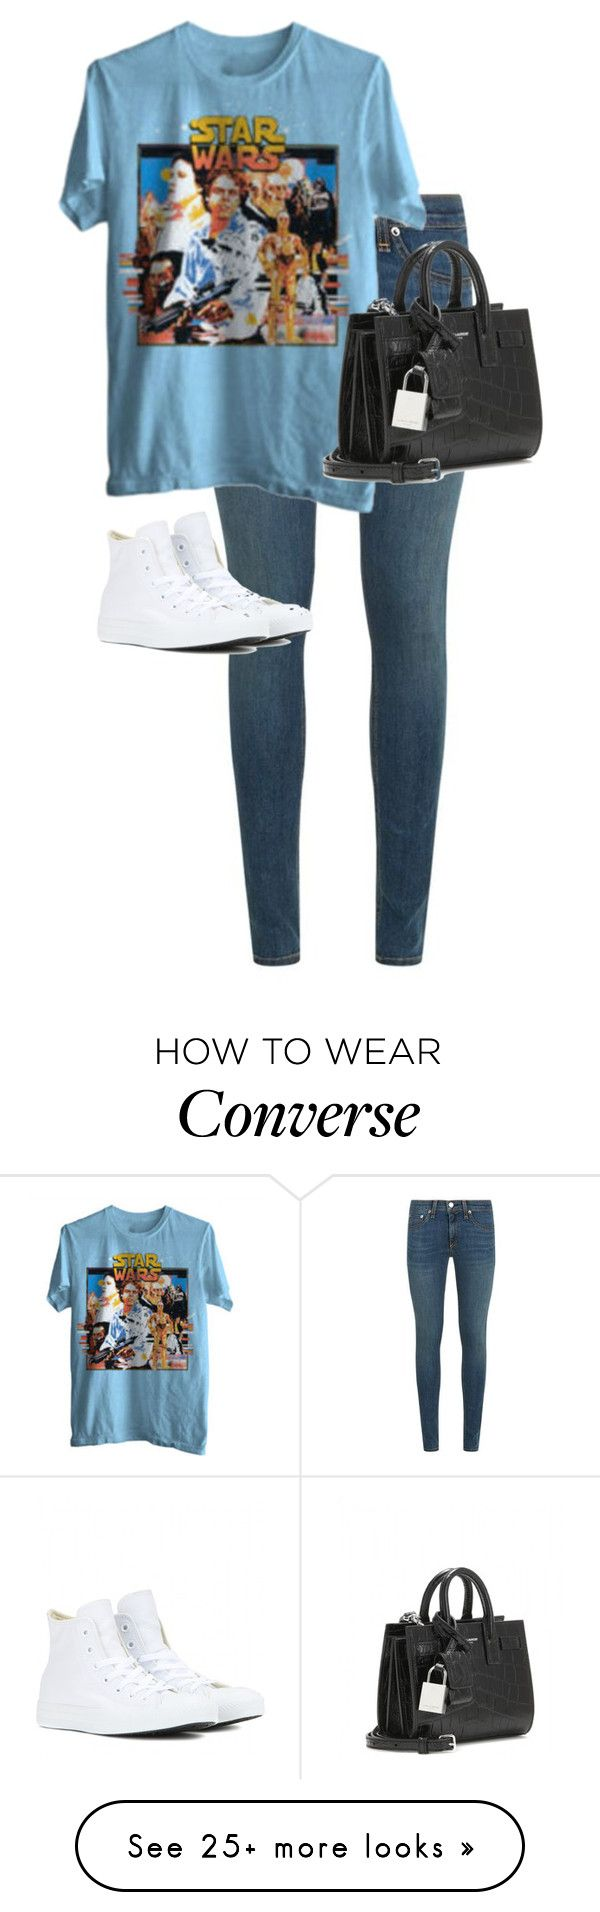 """Untitled #10348"" by alexsrogers on Polyvore featuring rag & bone, Converse and Yves Saint Laurent"